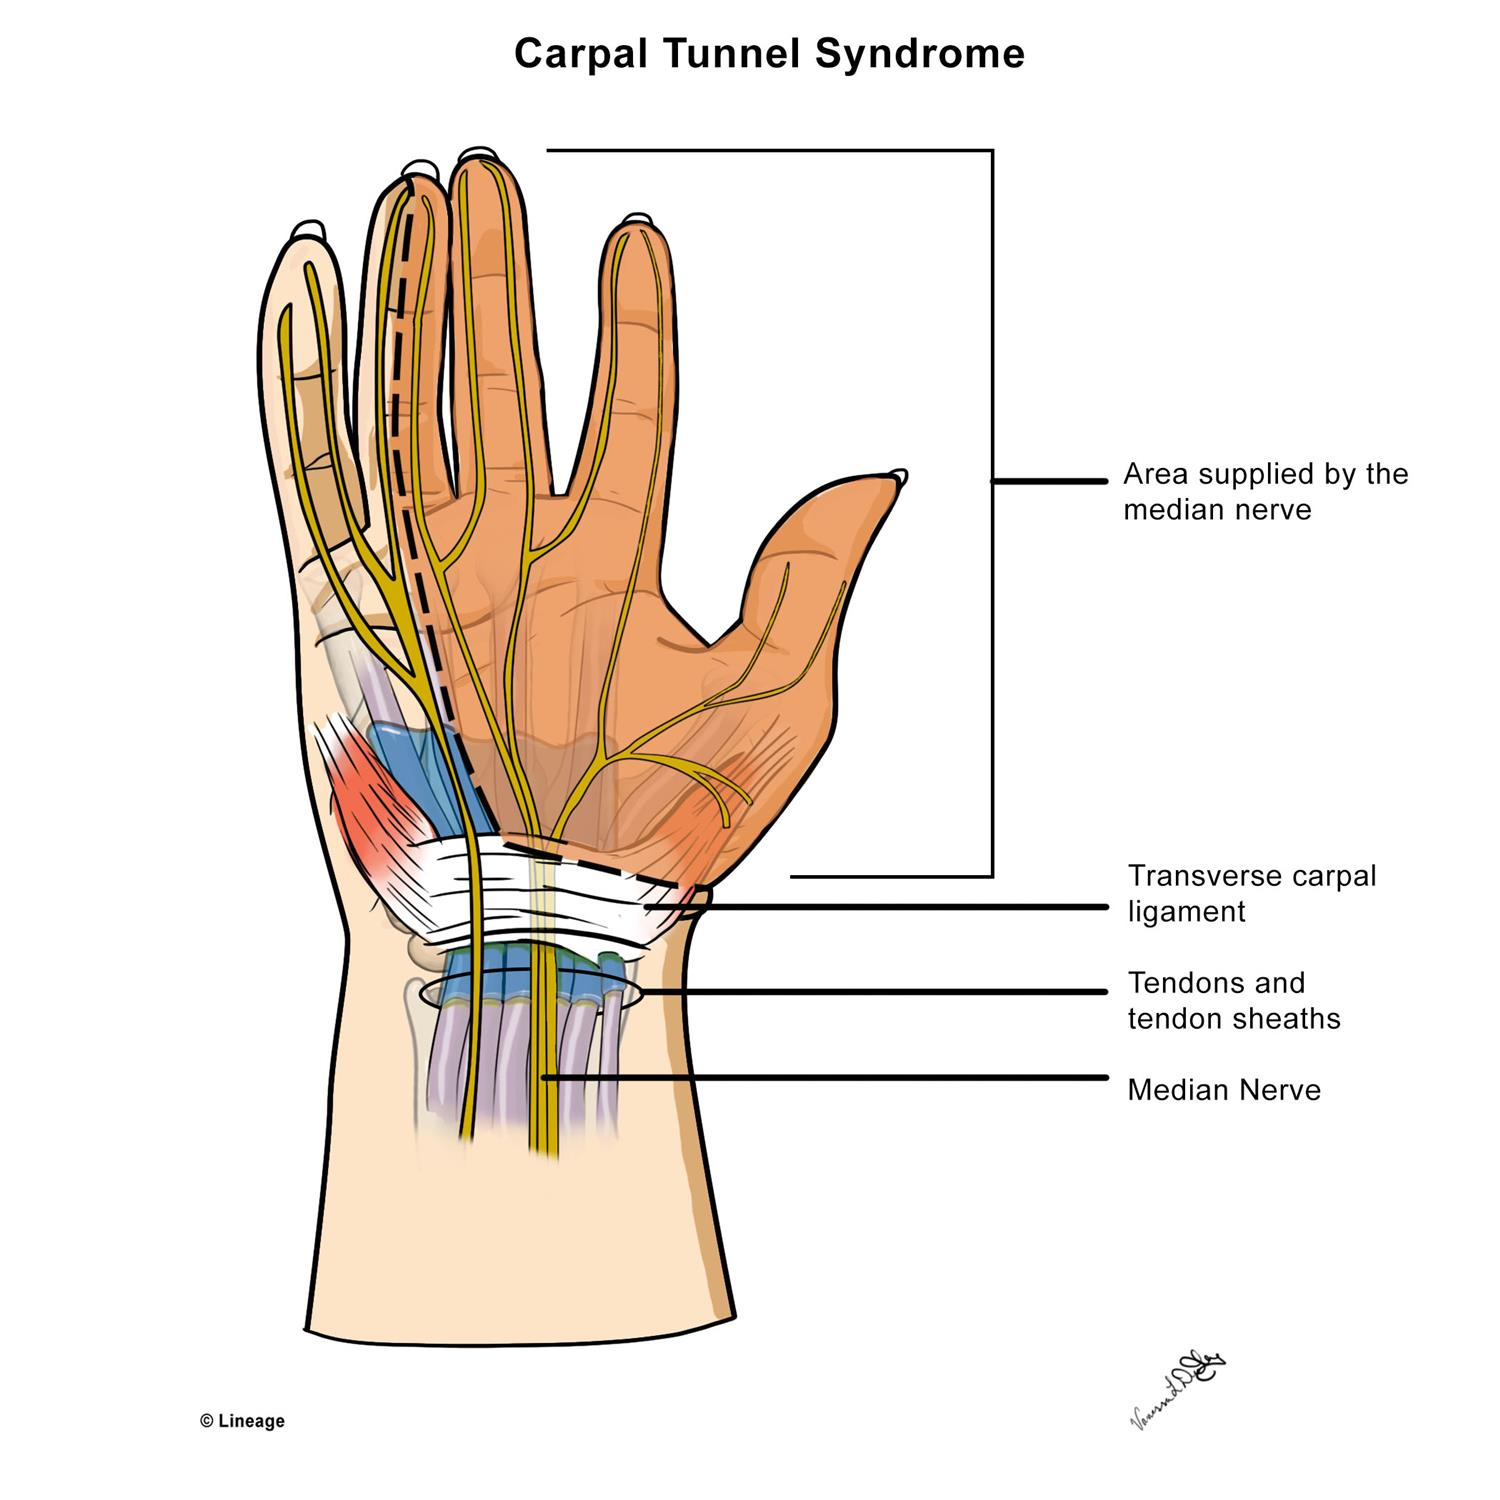 carpal tunnel syndrome - orthopedics - medbullets step 2/3